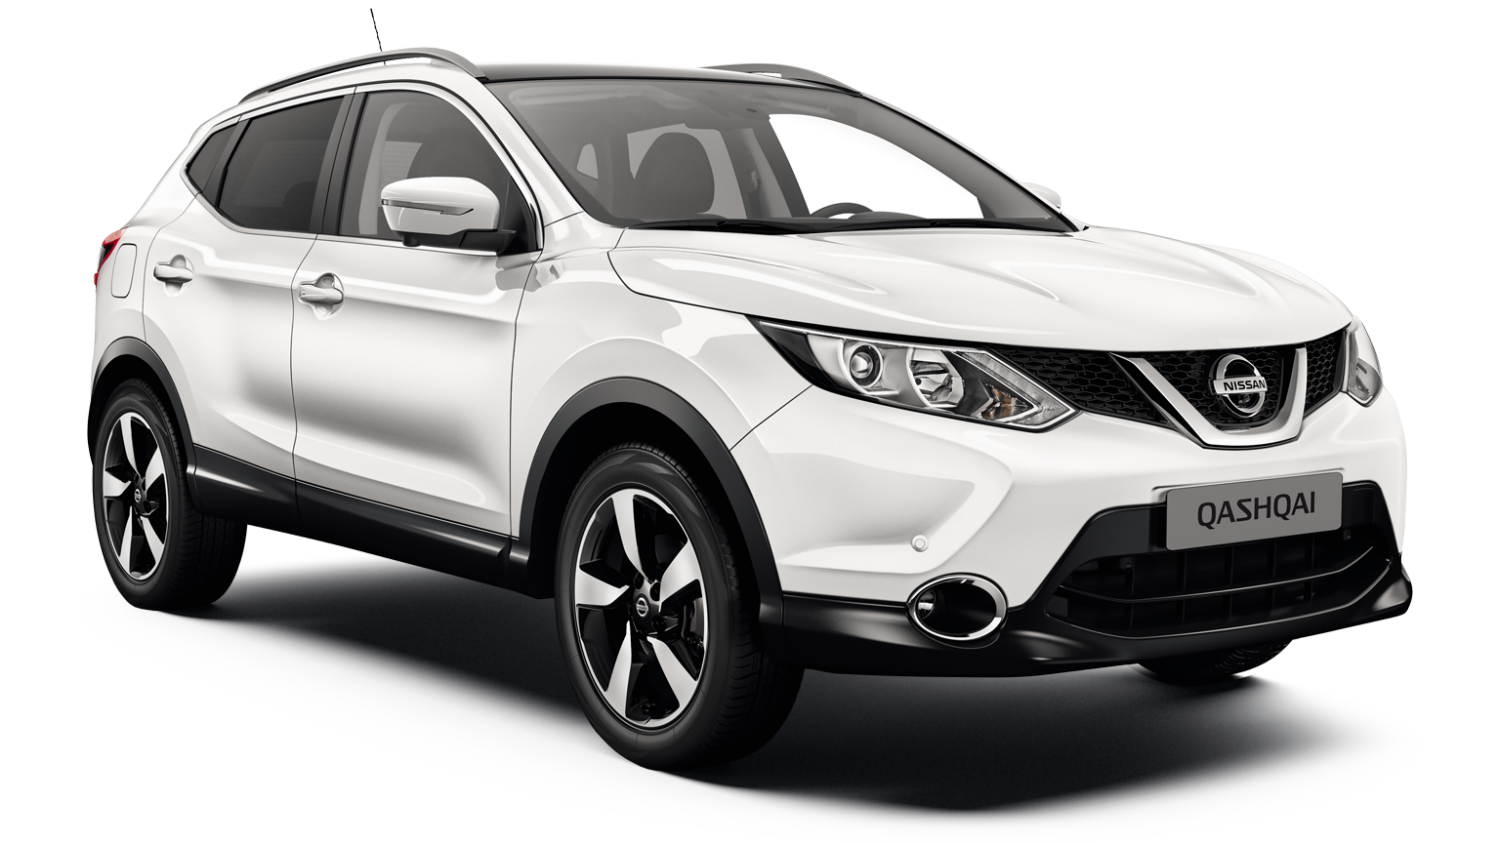 Nissan Qashqai Connect Edition - 3/4 front view